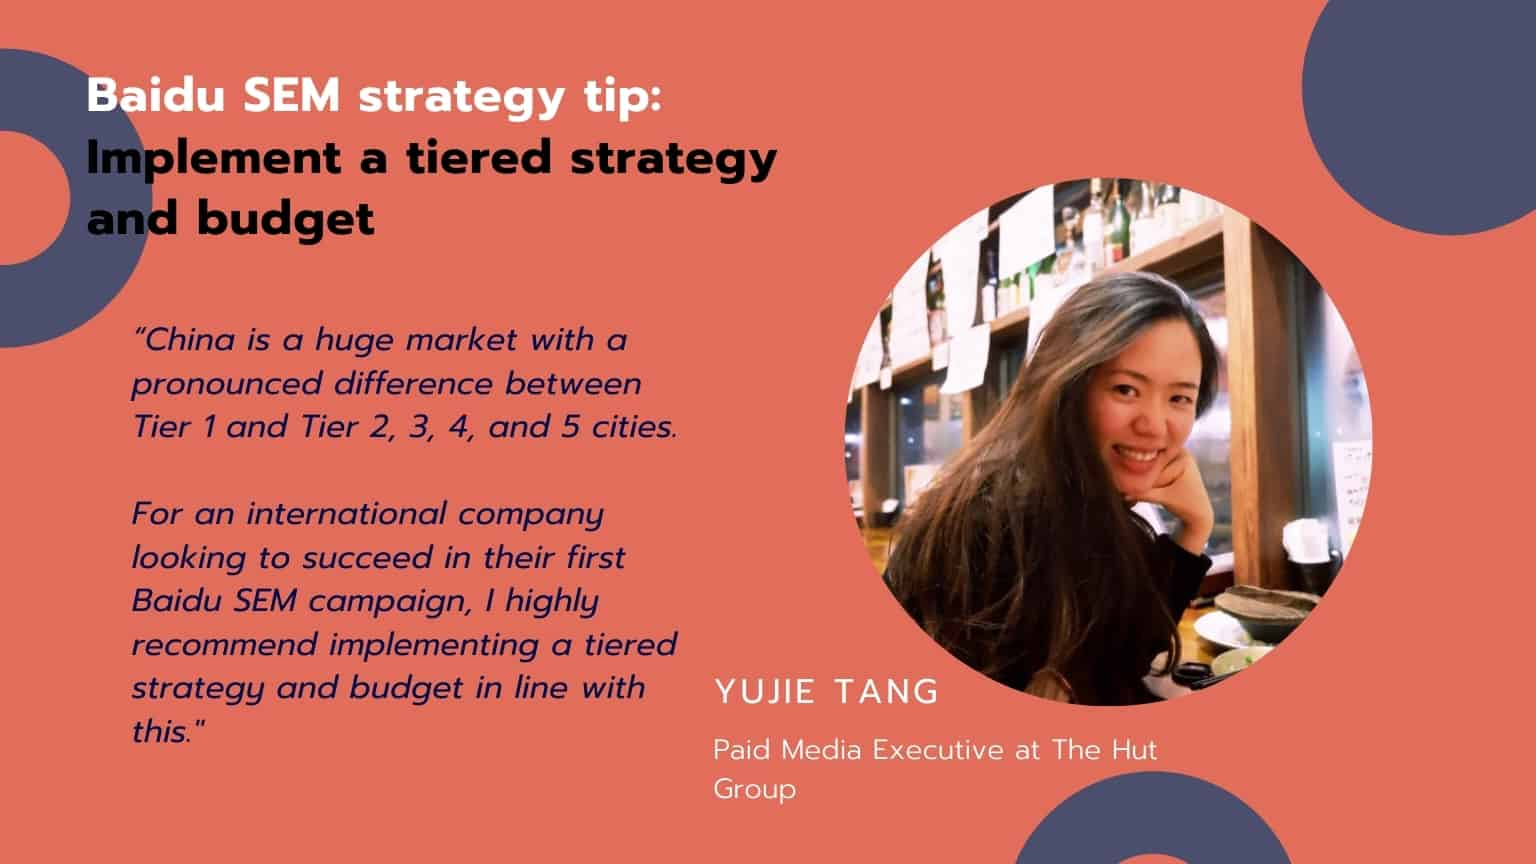 Baidu SEM strategy tip : Implement a tiered strategy and budget